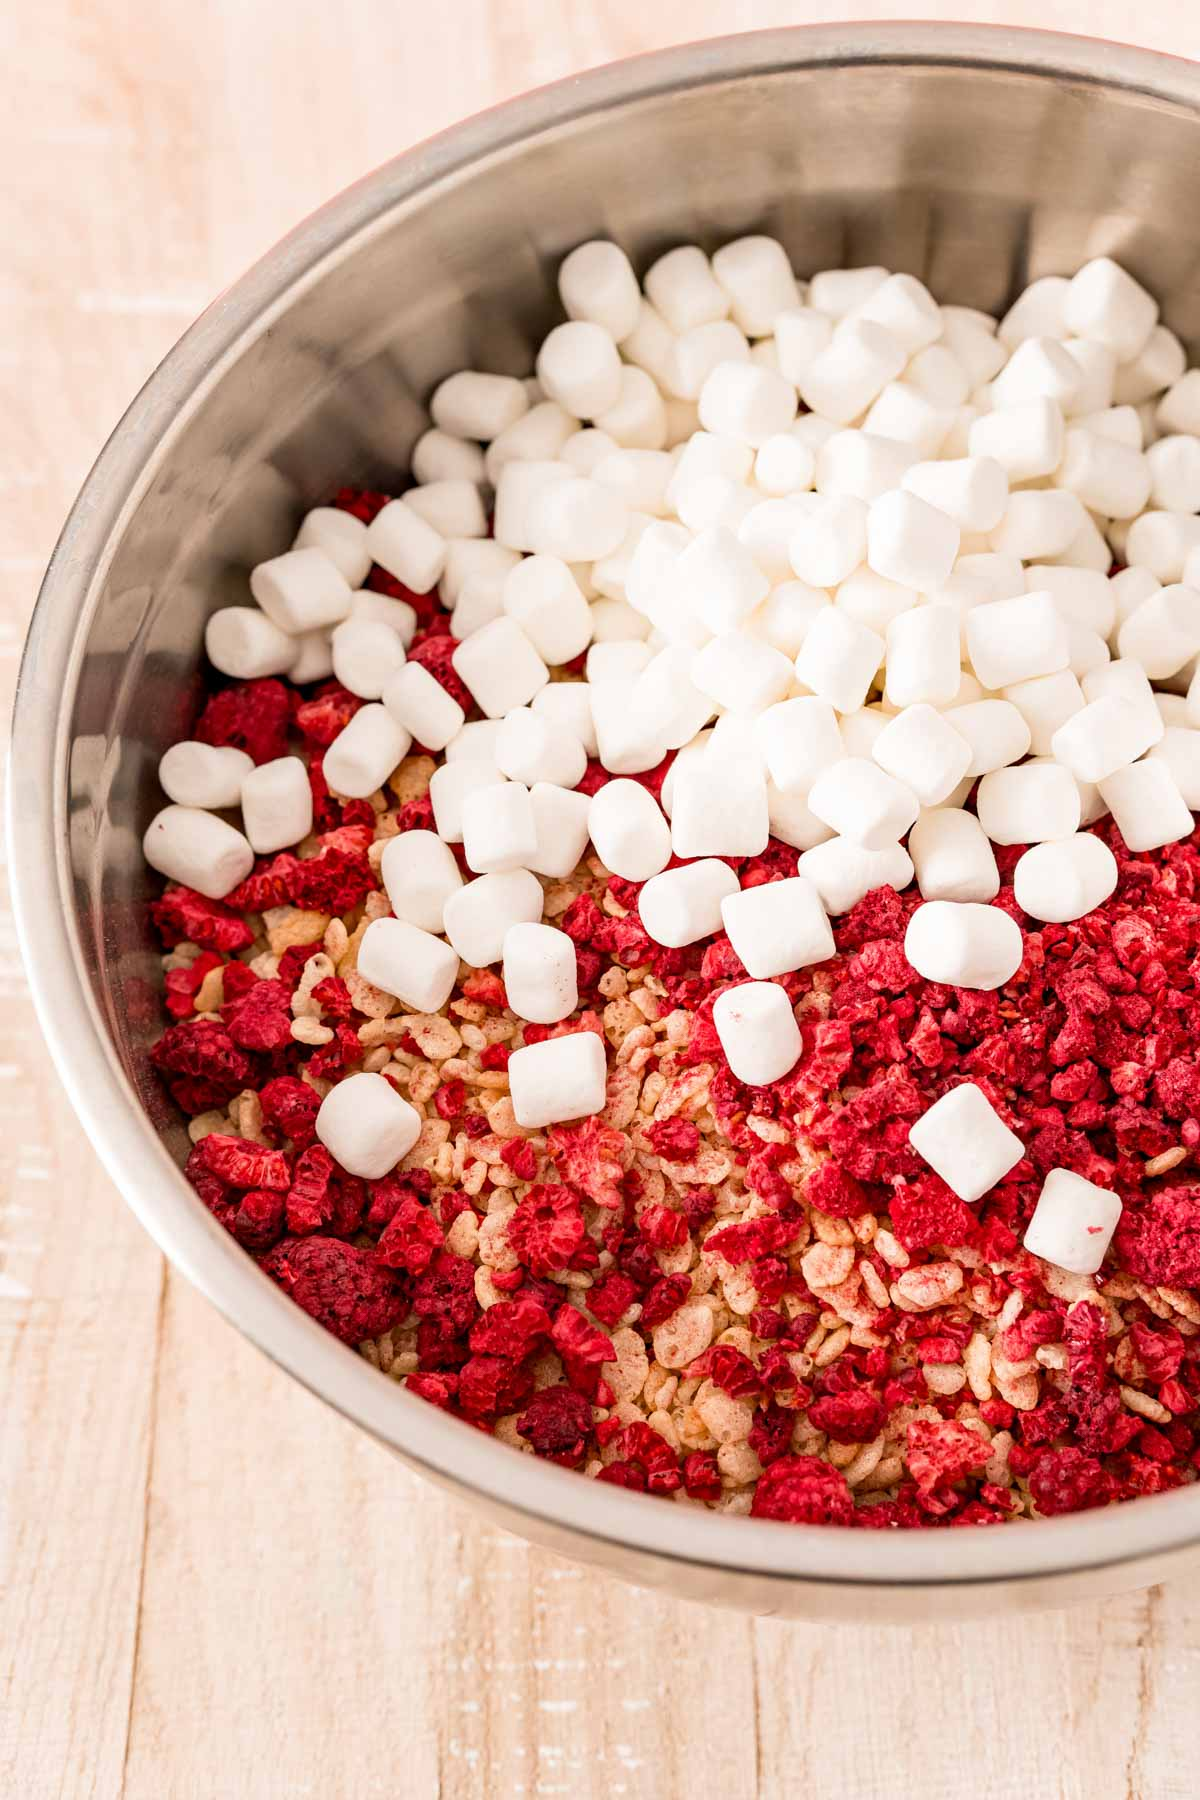 Pot with rice krispies, raspberries, and marshmallows